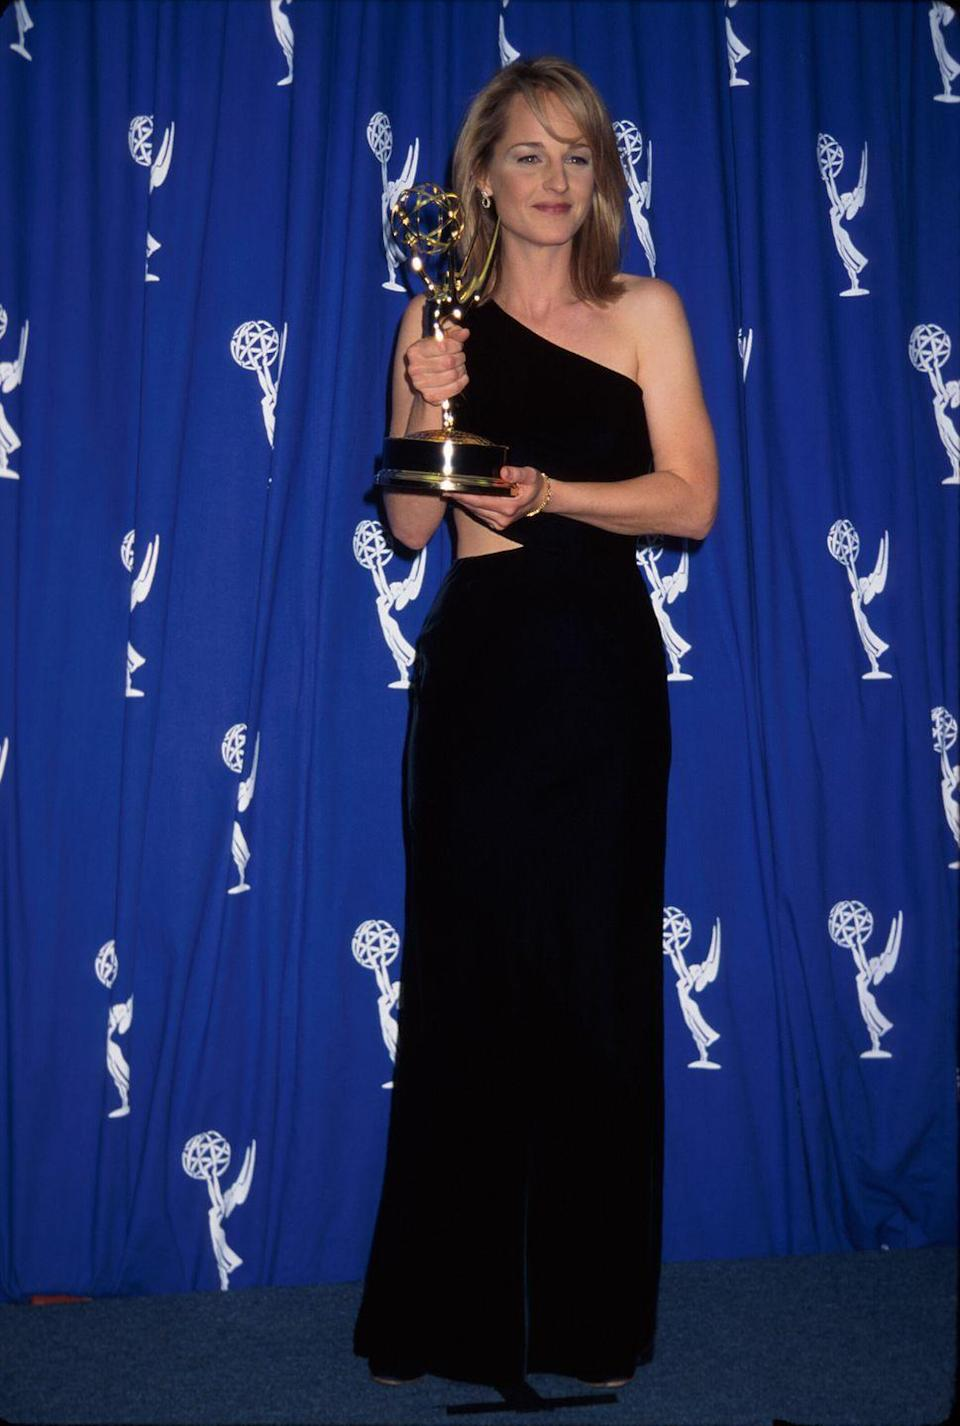 <p>Helen won Best Lead Actress in a Comedy Series for <em>Mad About You </em>this year, and posed with her award in a one-shoulder black dress with a cutout at the side. </p>